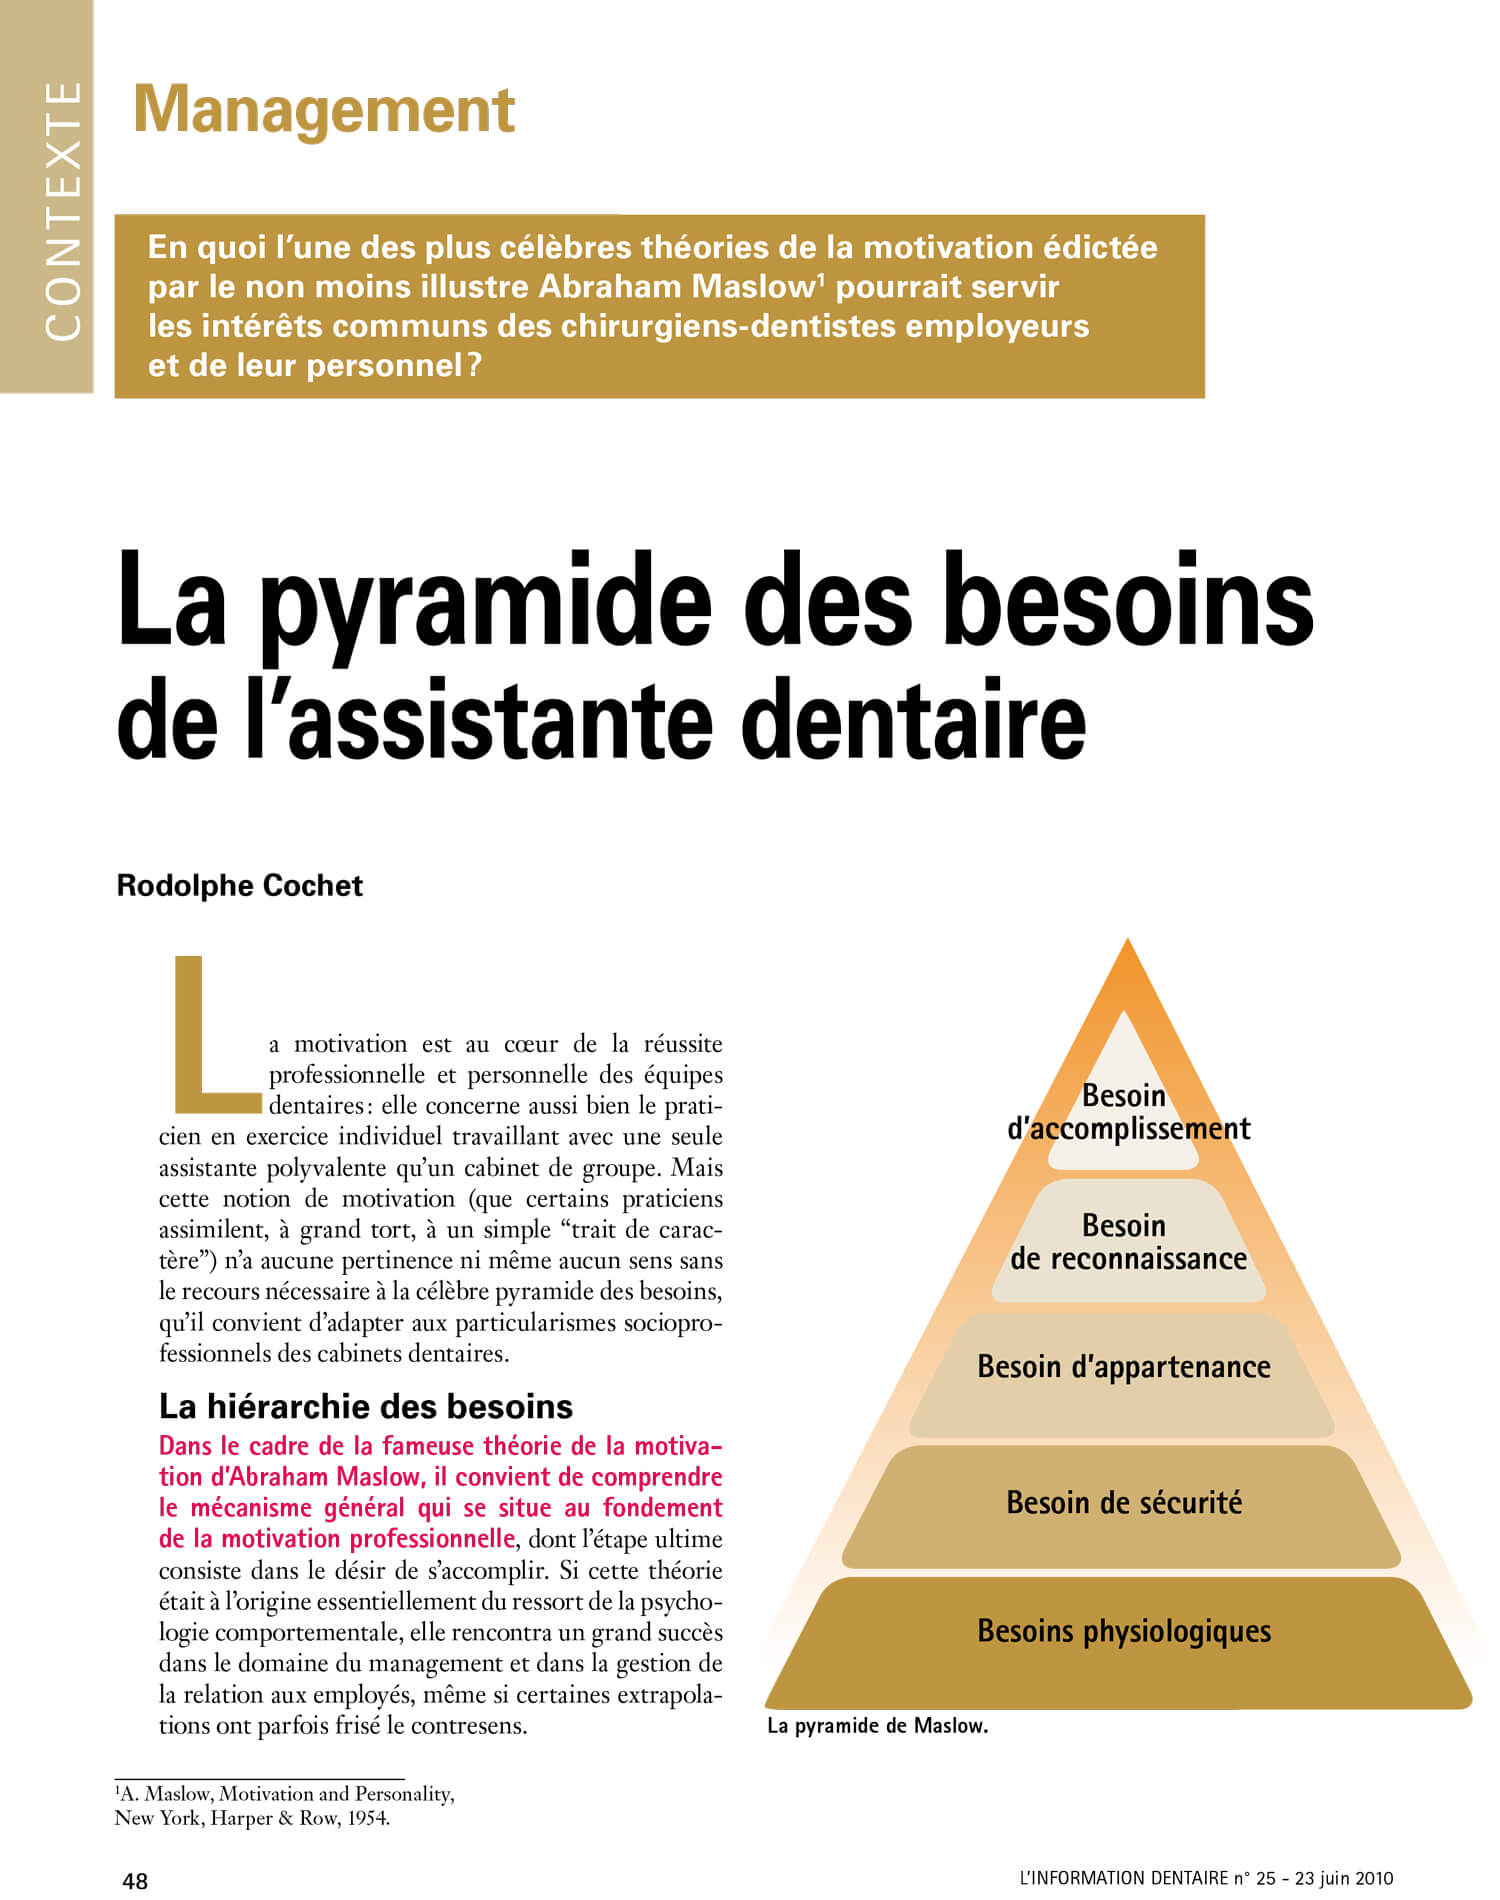 motivation-besoins-pyramide-maslow-assistante-dentaire-Rodolphe-Cochet.jpg